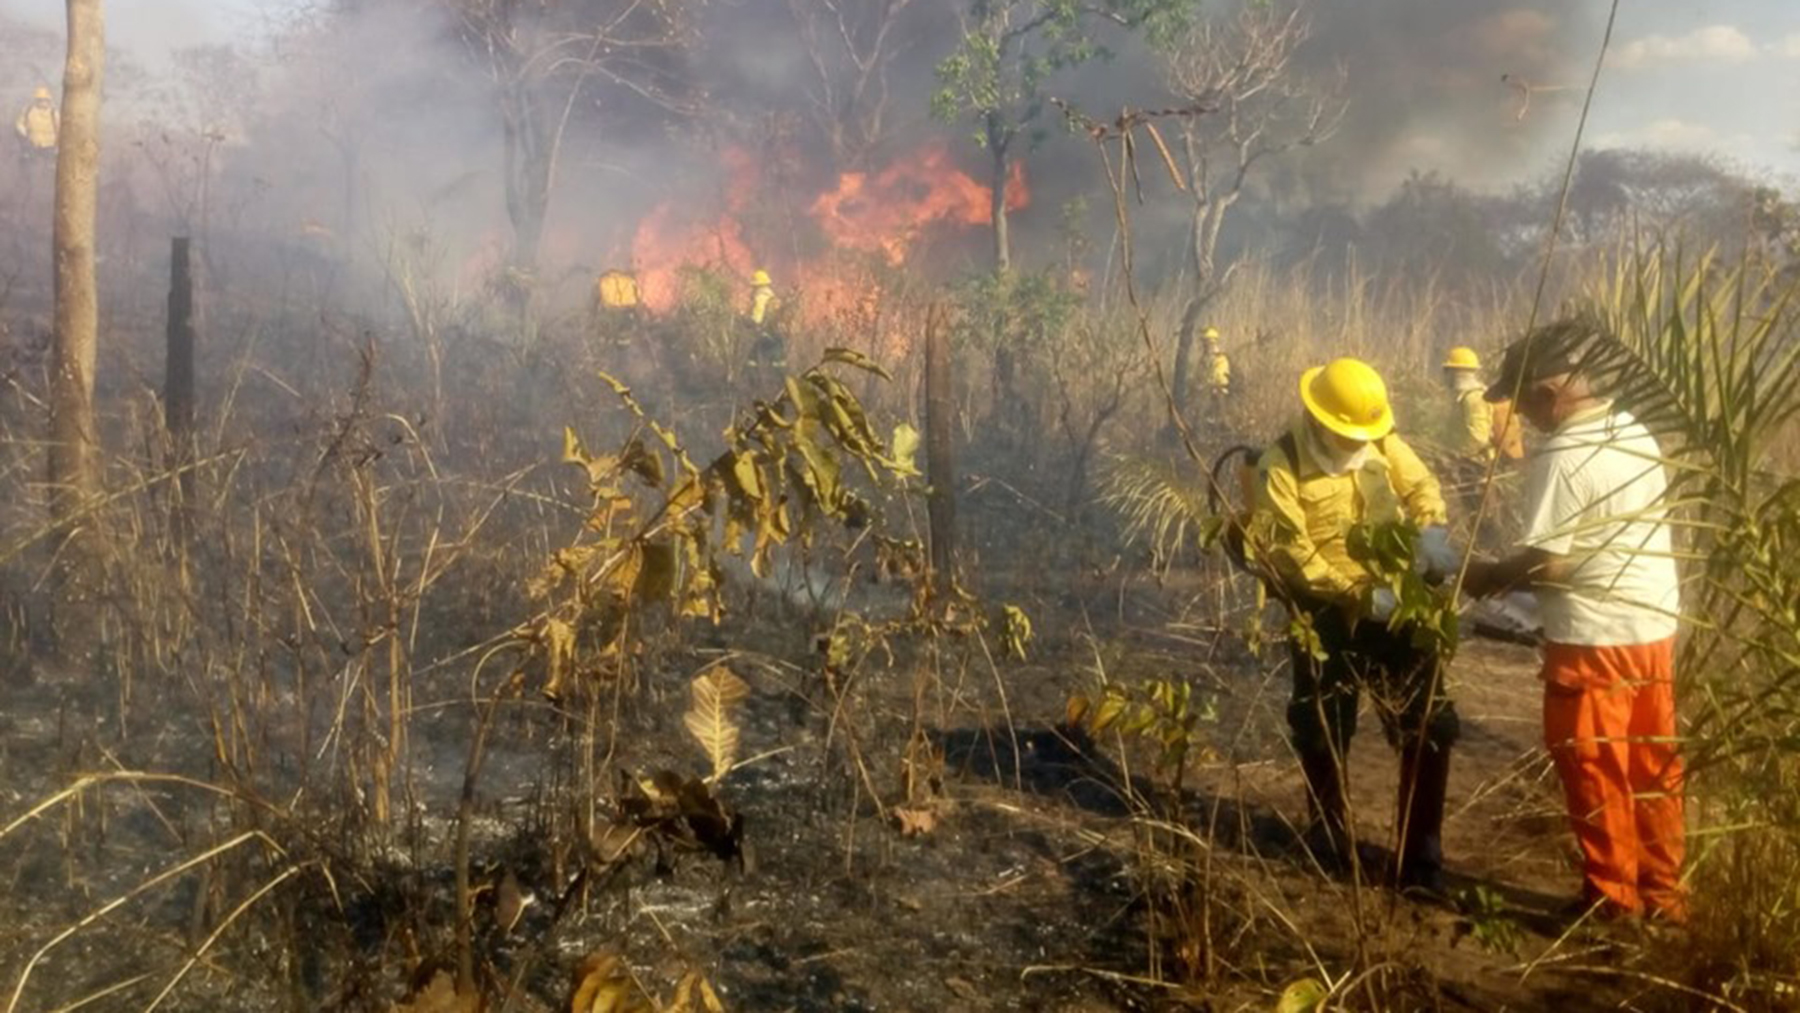 A fire burns in the Brazilian Amazon earlier this summer, and the blazes have continued in the region, raising concerns about long-term health issues. (Photo by Pedro Paulo Xerente for the Fundação Nacional do Índio)